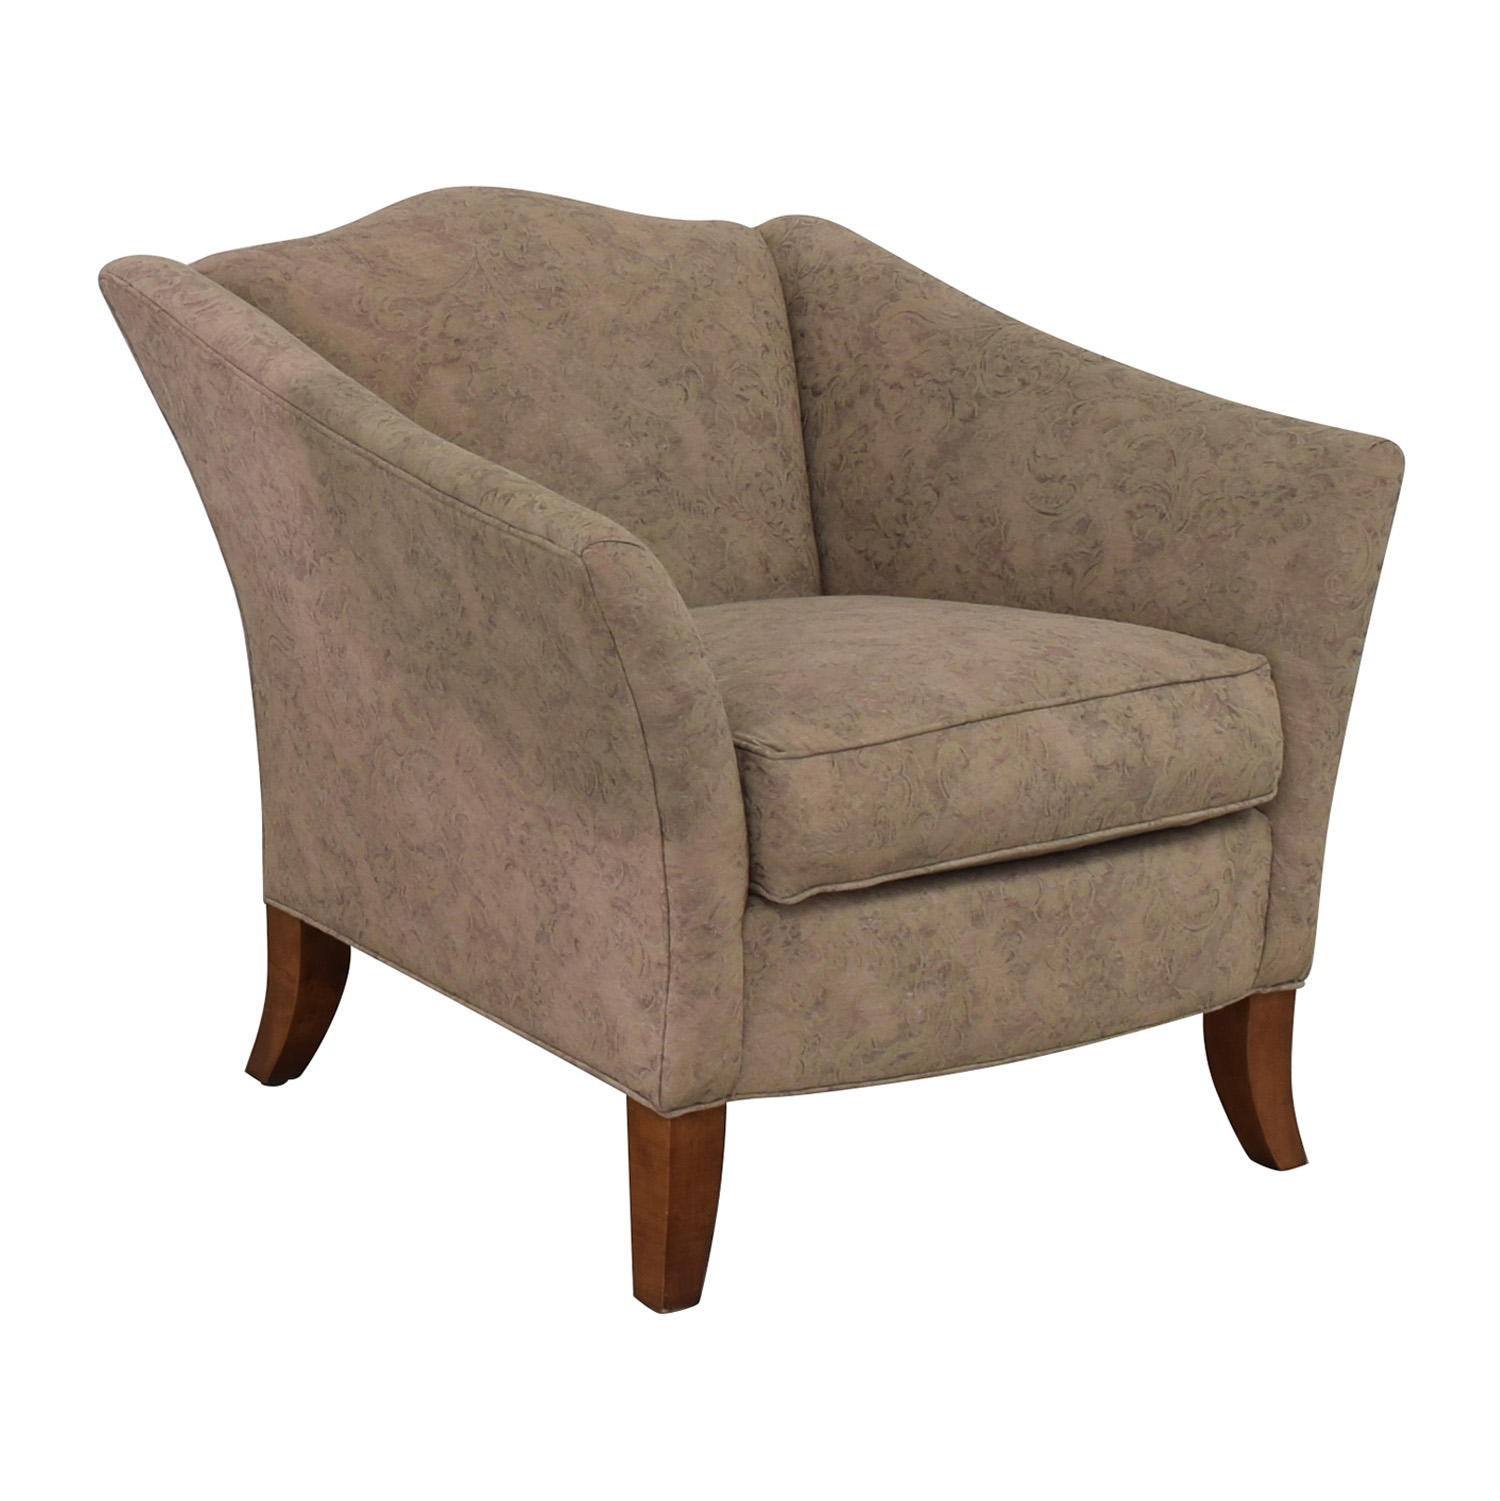 Thomasville Thomasville Grey Accent Chair coupon